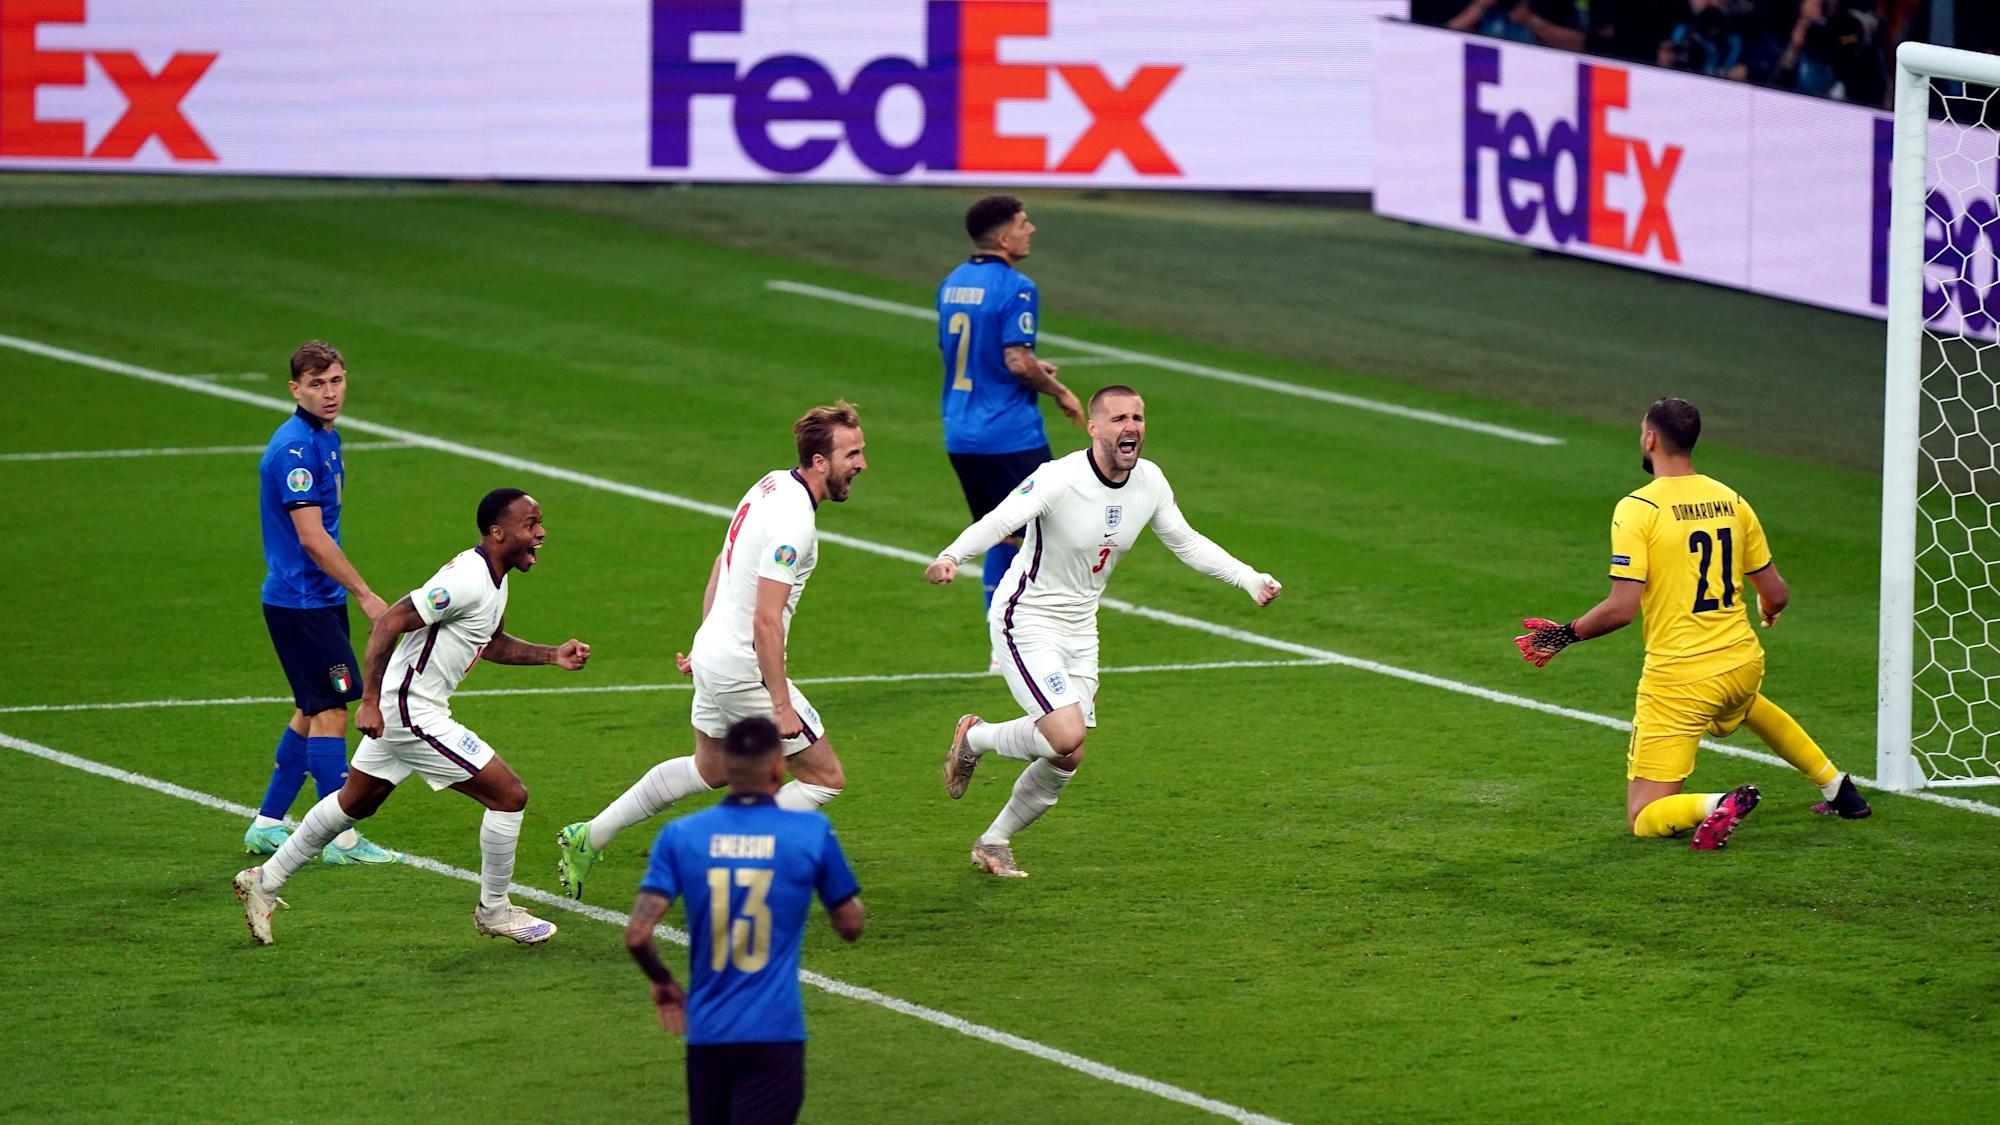 Luke Shaw goal gives England early lead in Euro 2020 final – live!